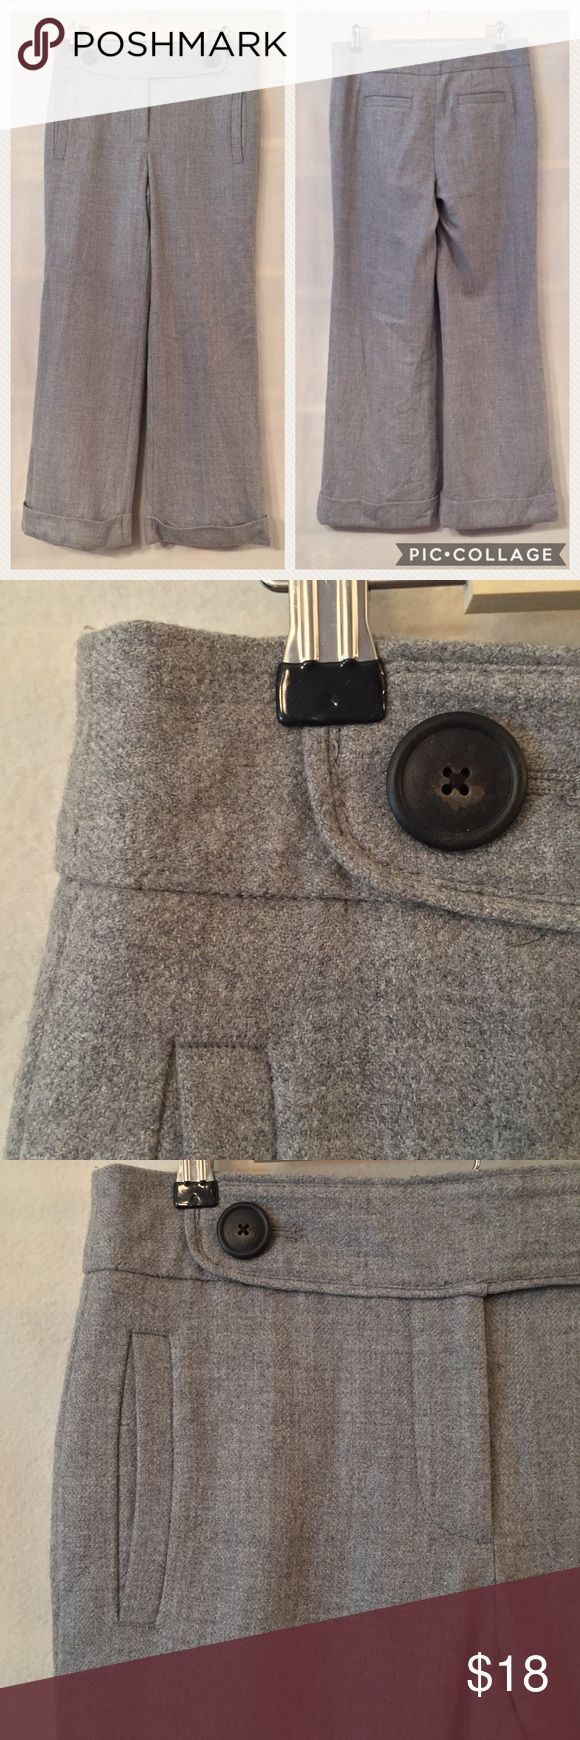 "J. Crew heather grey wool herringbone trousers EUC. No stains or holes. J. Crew herringbone university wide legged cuffed trousers in heather grey. Favorite fit. Sits below waist. Fitted through hip and thigh with a wide leg. Fully lined. Decorative button on right side, functional button on left. Vertical welt front pockets.  Back welt pockets. 100% wool. 100% polyester lining. Measurements (flat): waist 15"", hip 19"" rise 10"", thigh 11"", inseam 30"". Style 86603. Dry clean. No trades. J…"